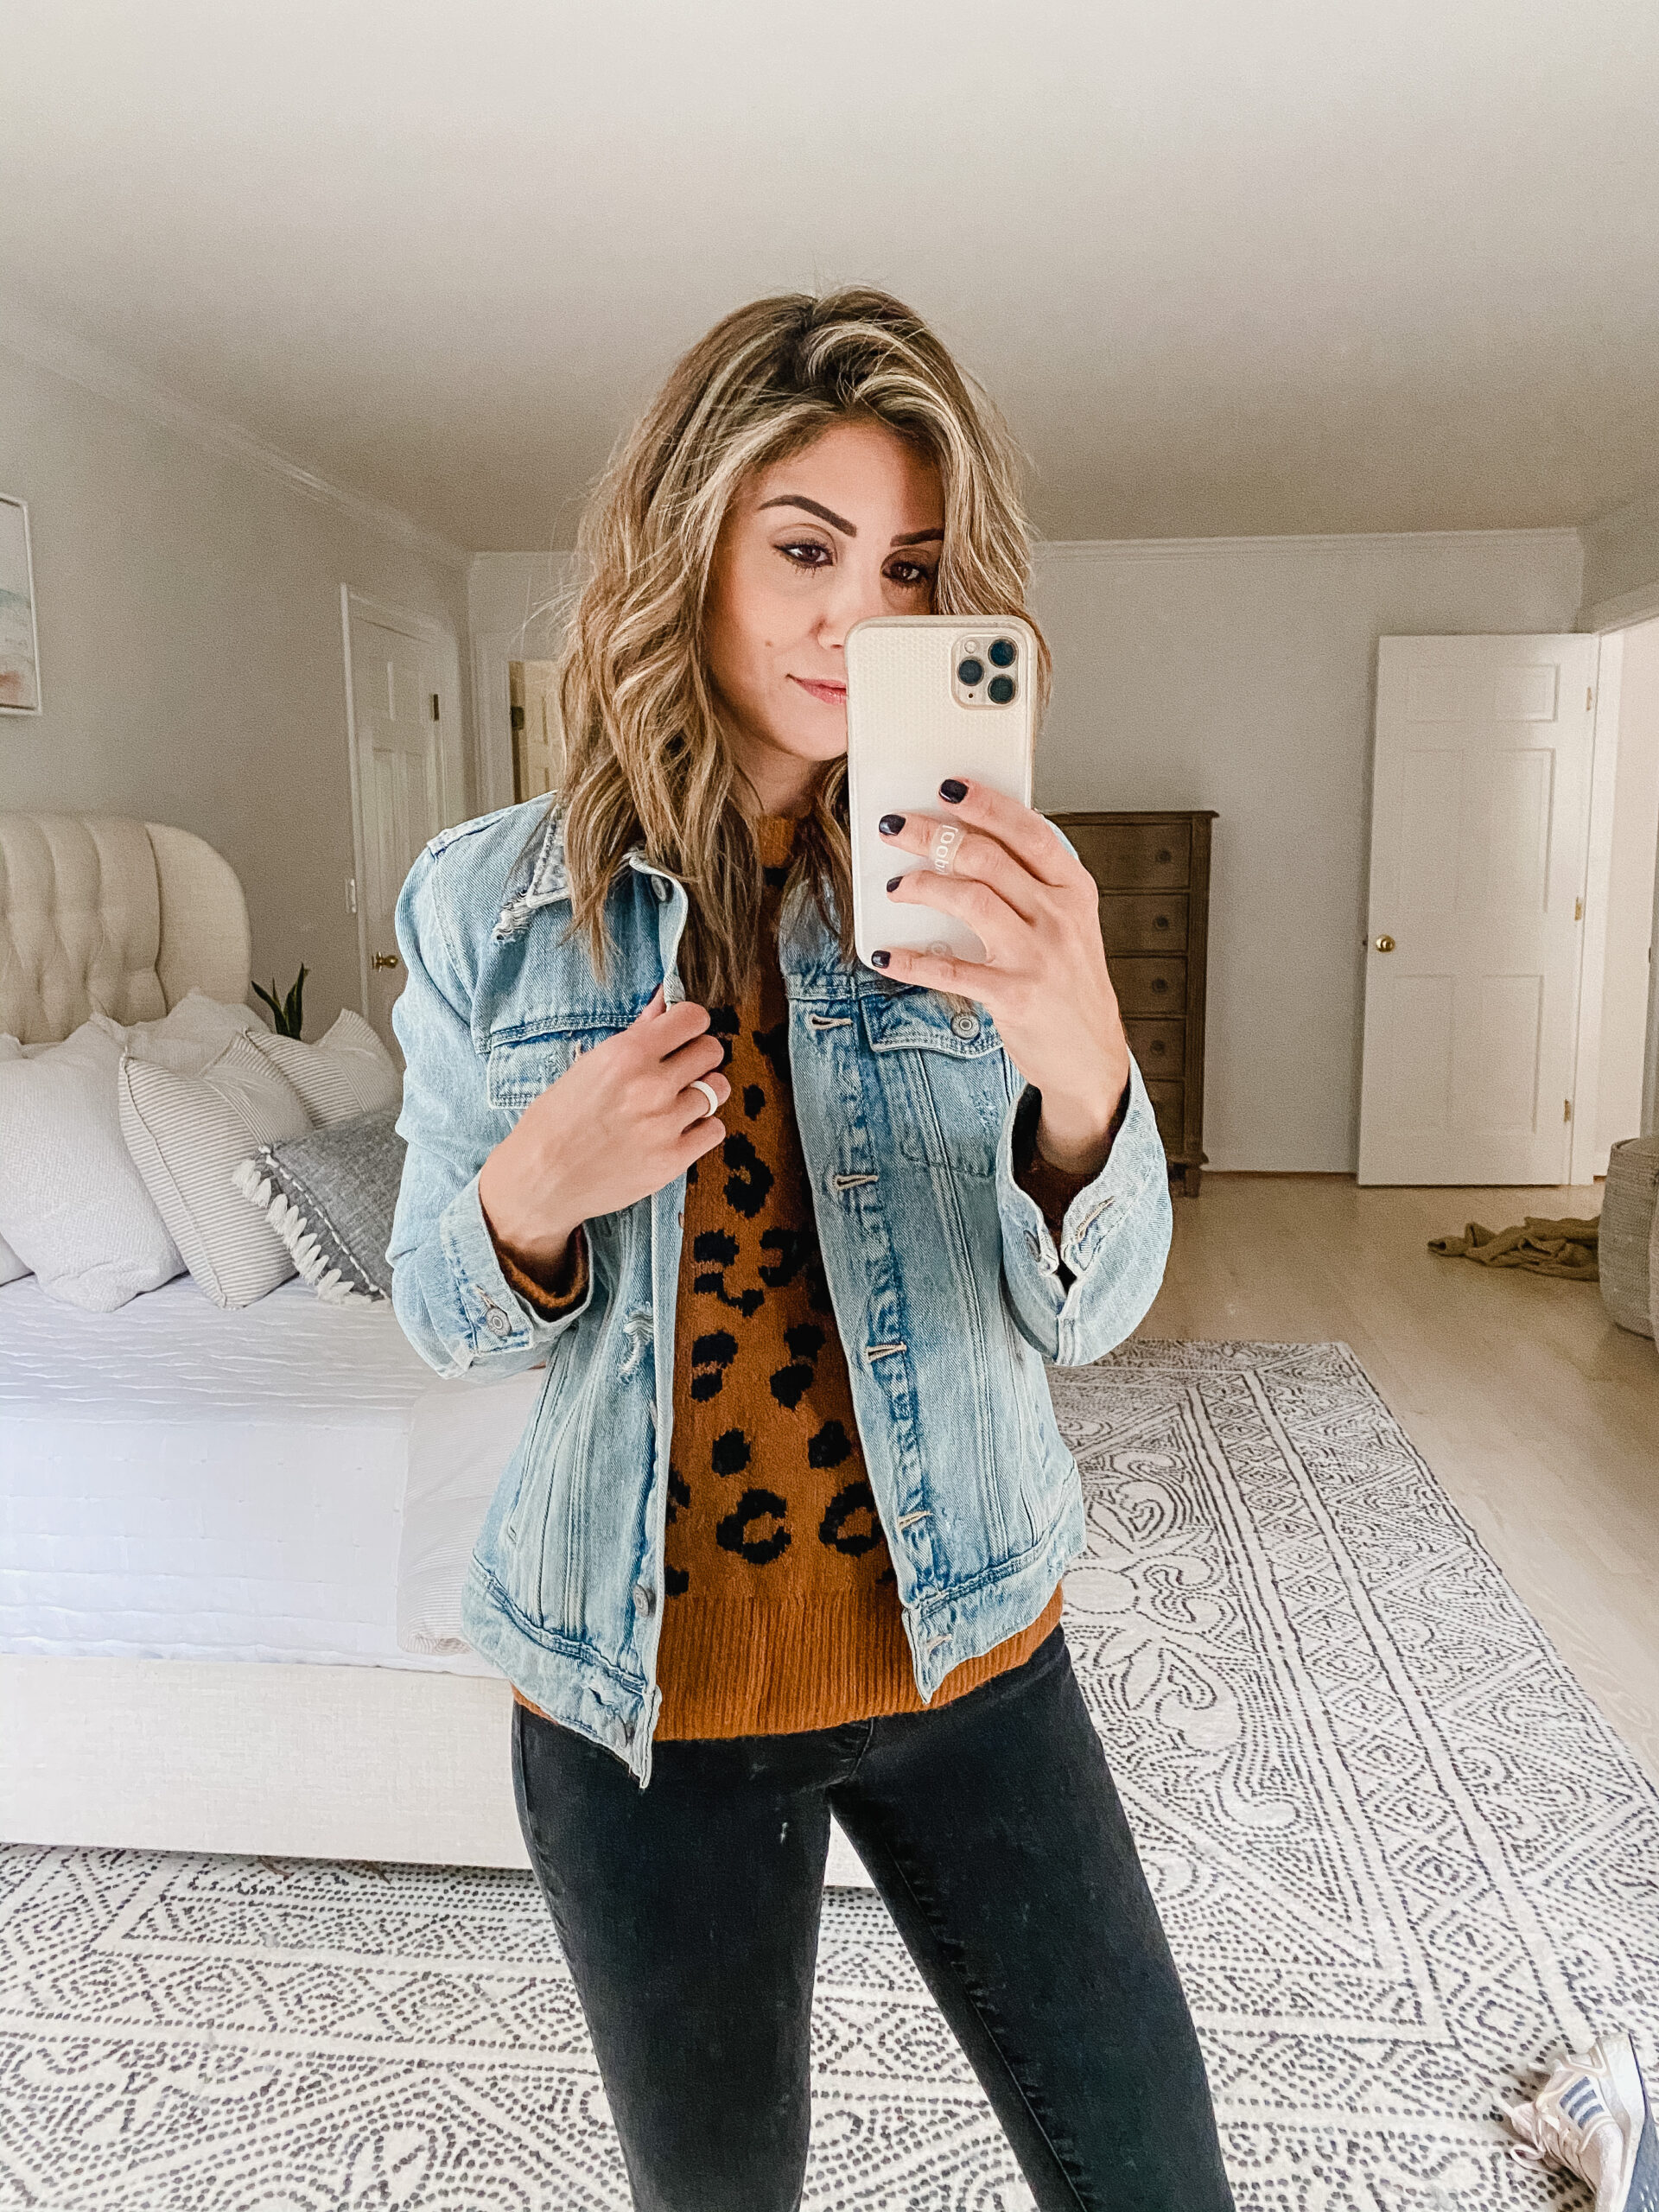 Connecticut life and style blogger Lauren McBride shares her October Old Navy picks featuring fall basics and cozy sweaters.